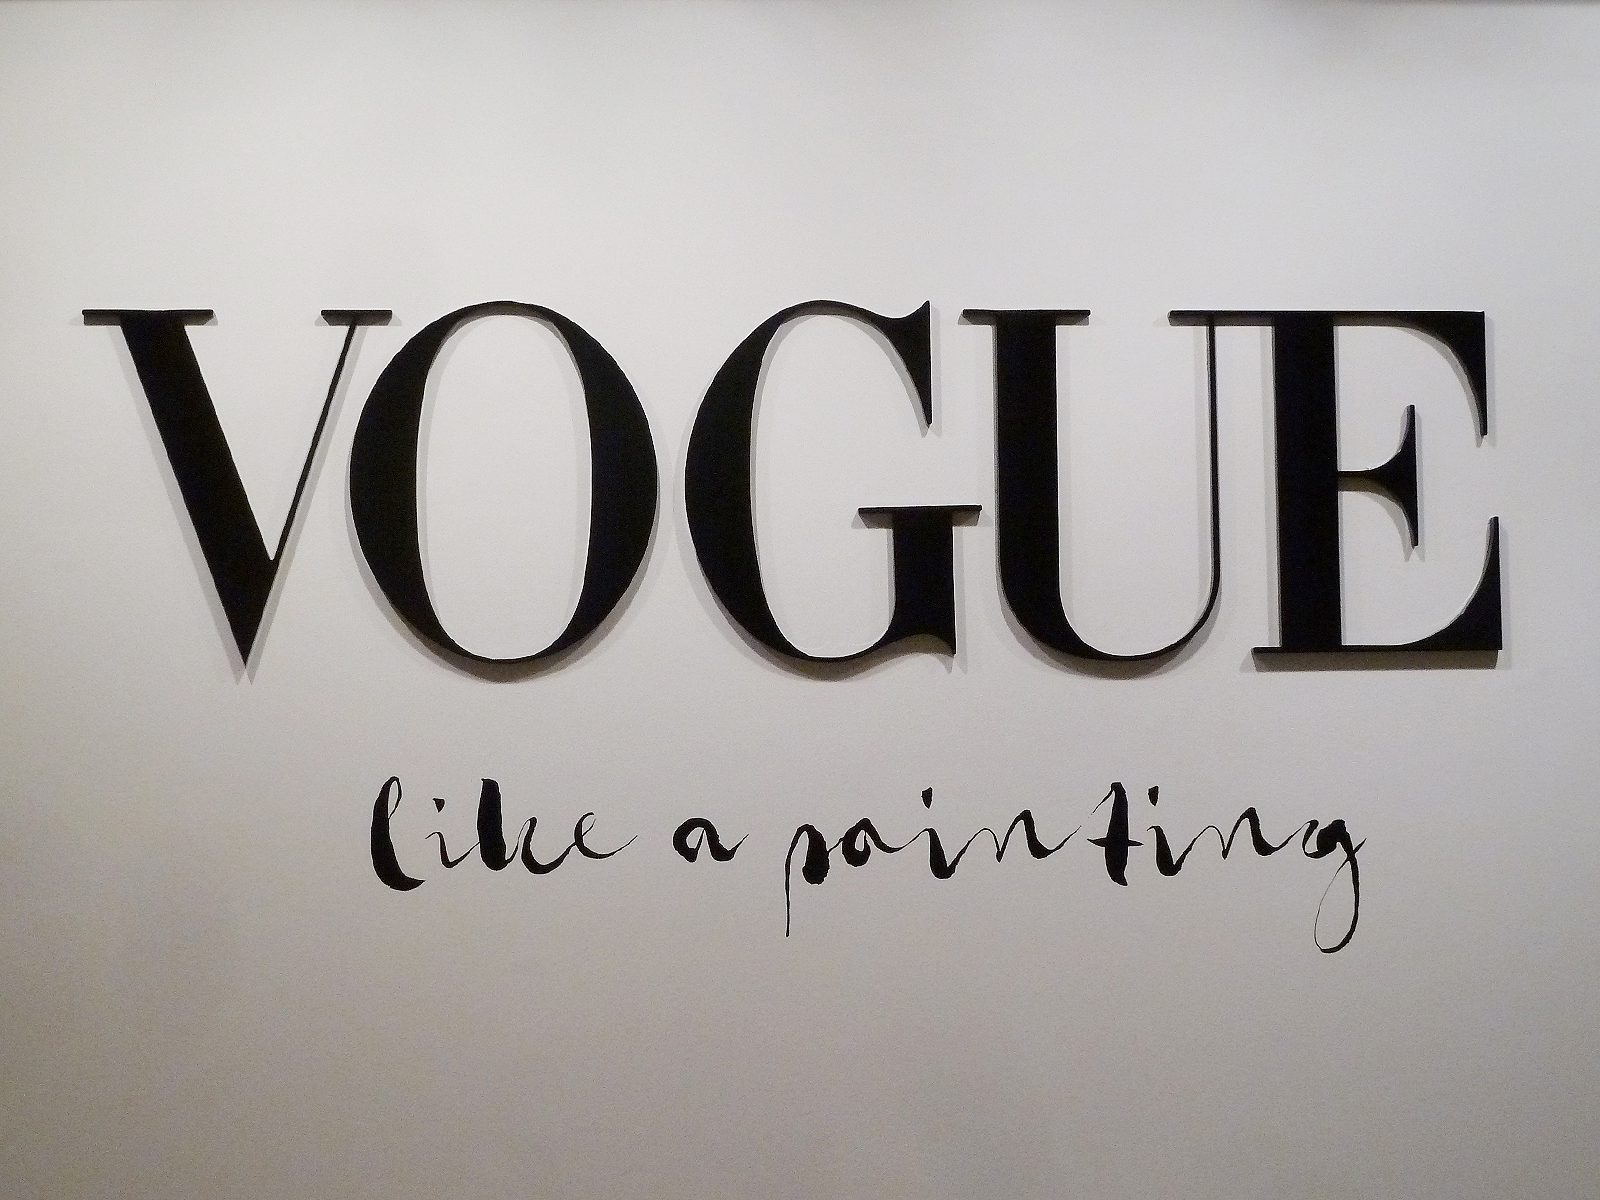 Vogue Like a Painting Art Exhibition in Madrid Takes High Fashion to High Art